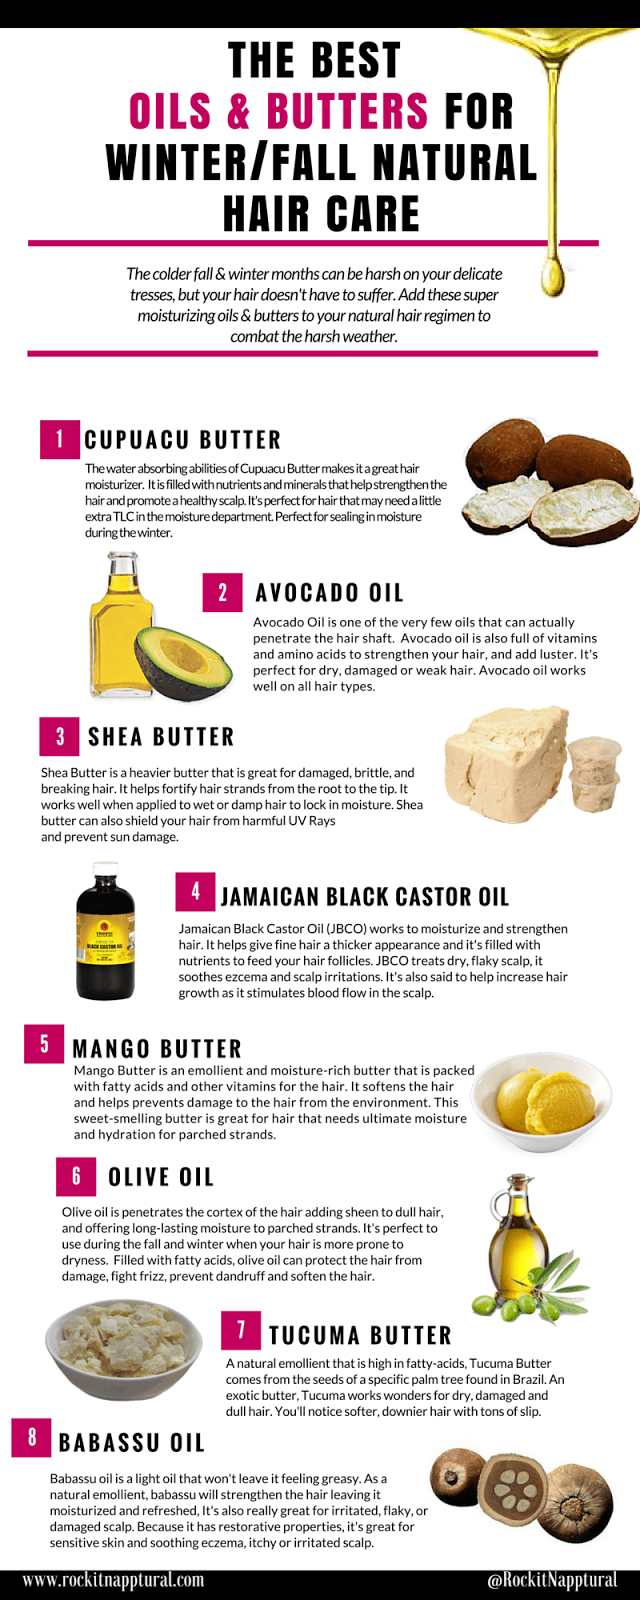 oils-butters-for-winter-fall-infographic-version2-1